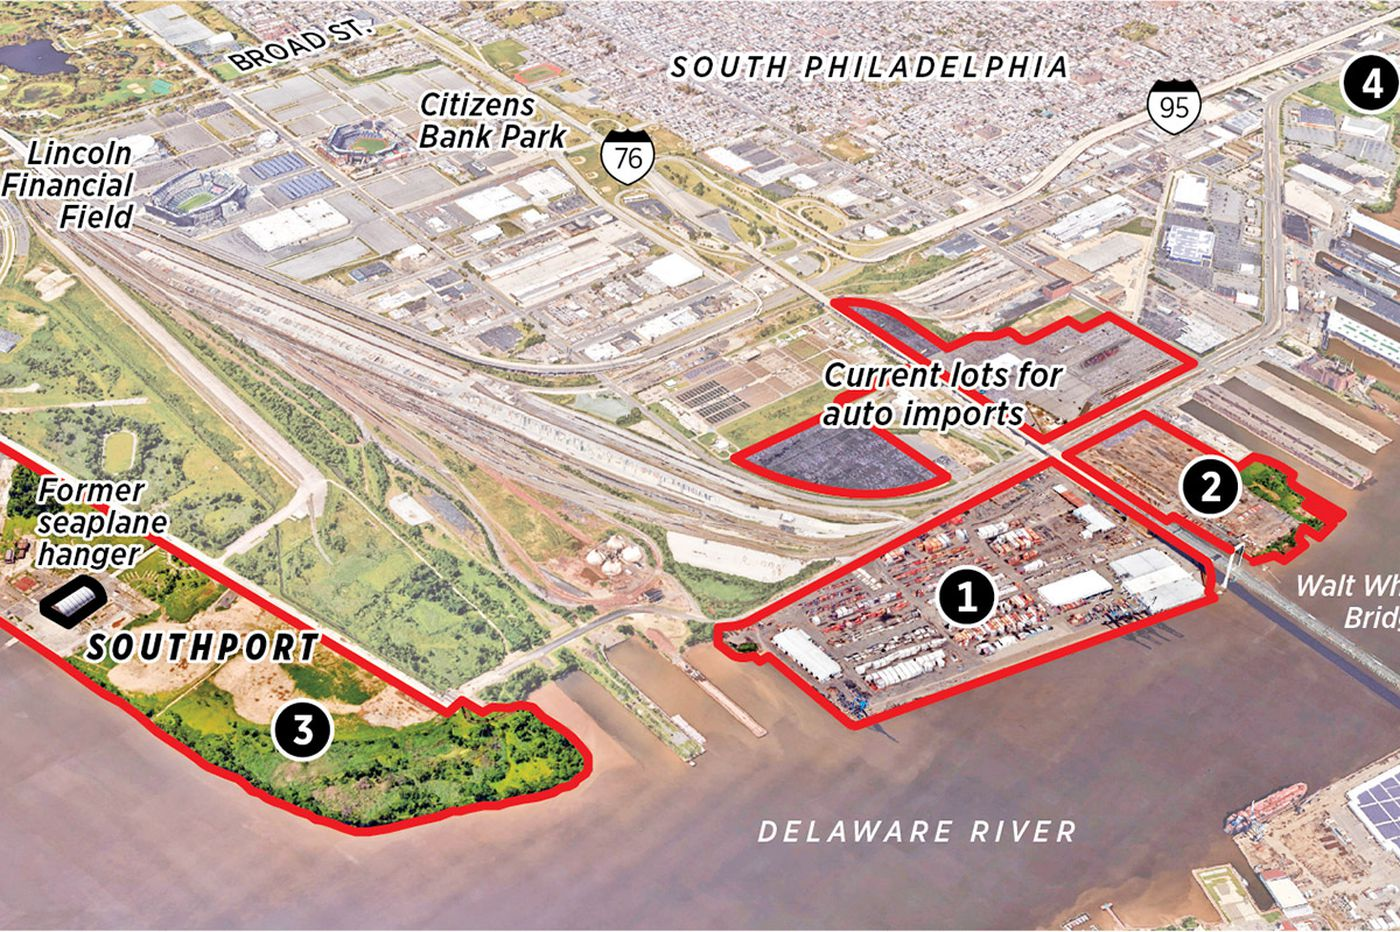 Philly port is poised to get new cranes, bigger ships, more cargo, and more jobs